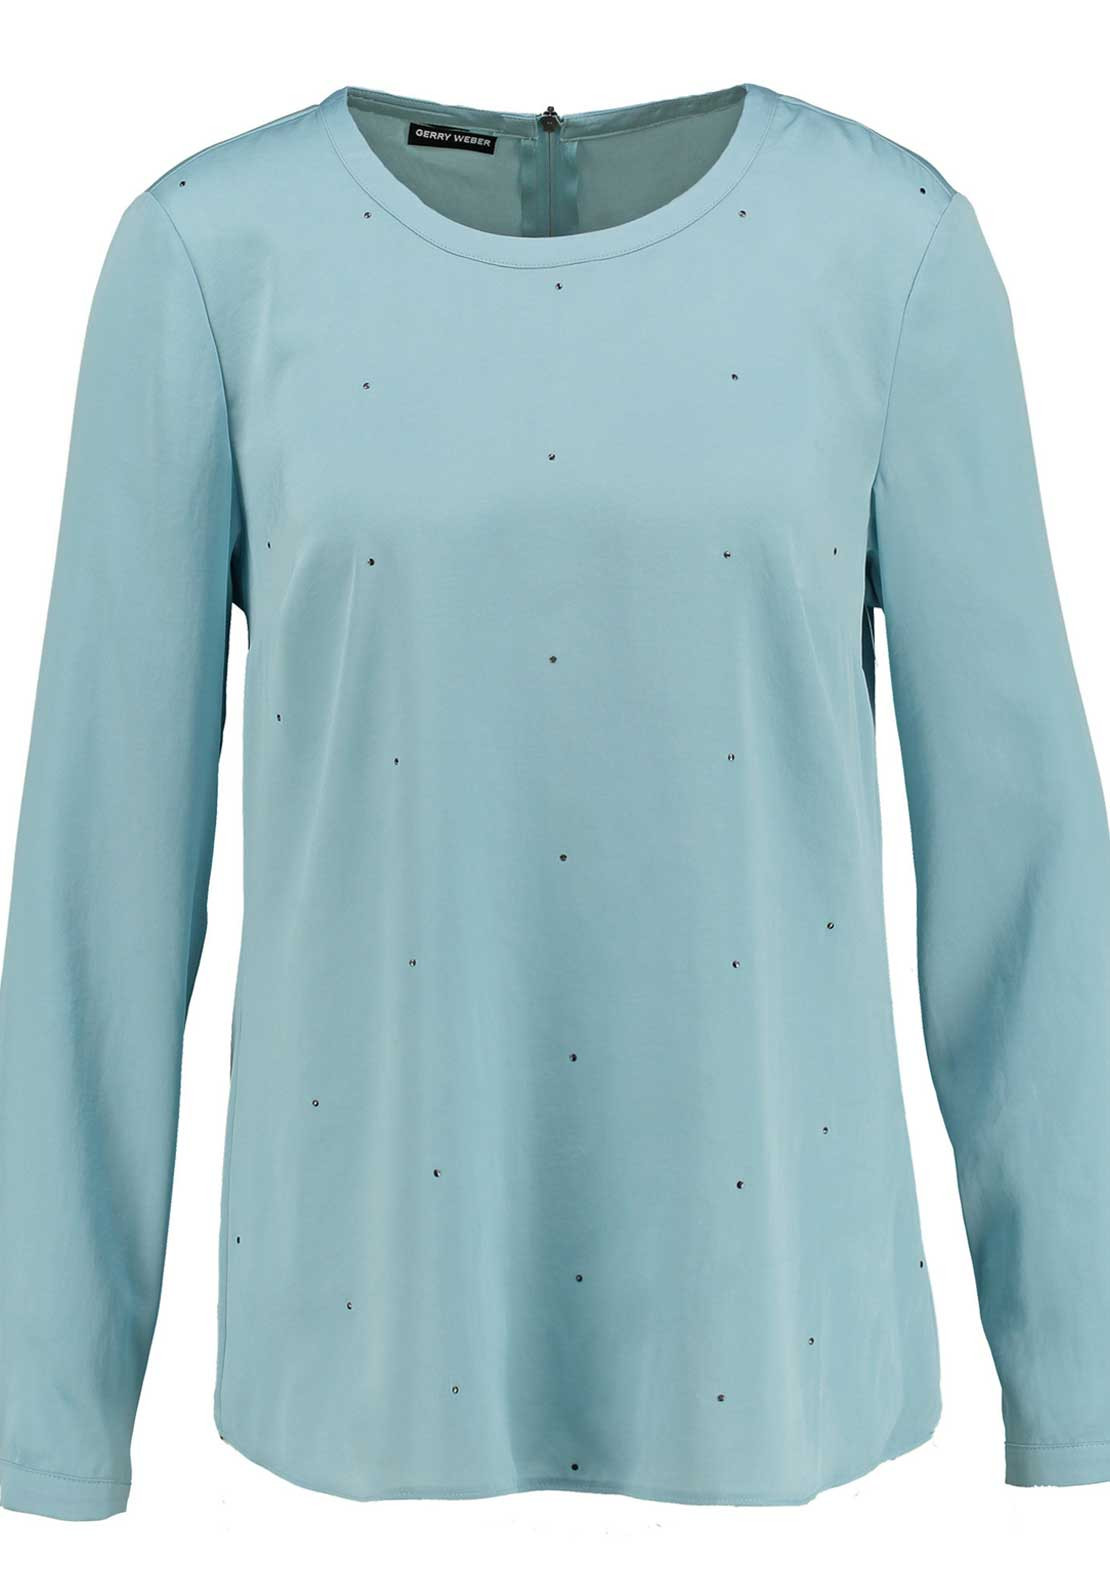 Gerry Weber Stud Embellished Satin Long Sleeve Blouse, Pale Blue